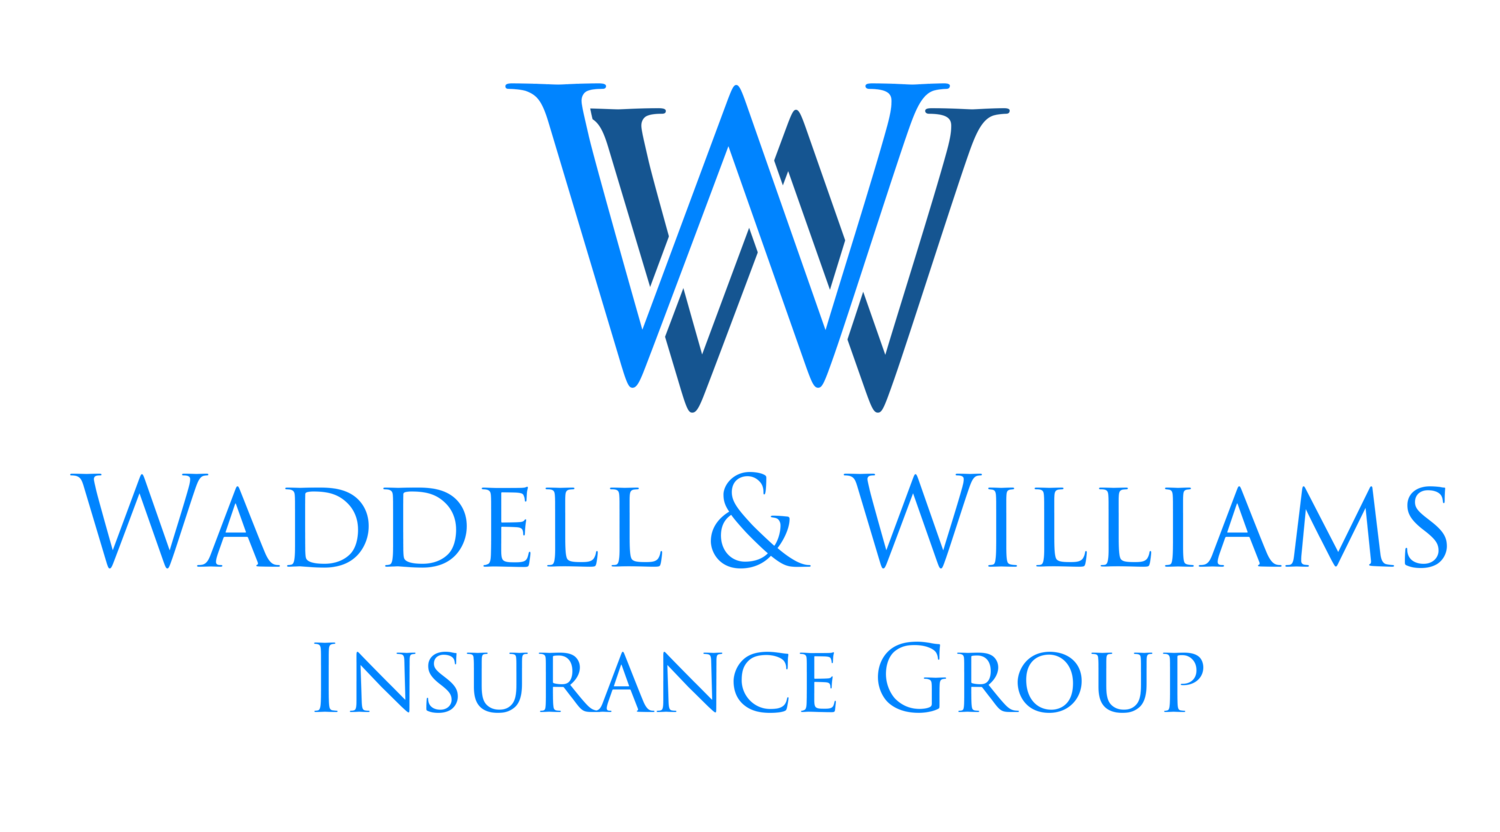 Waddell & Williams Insurance Group